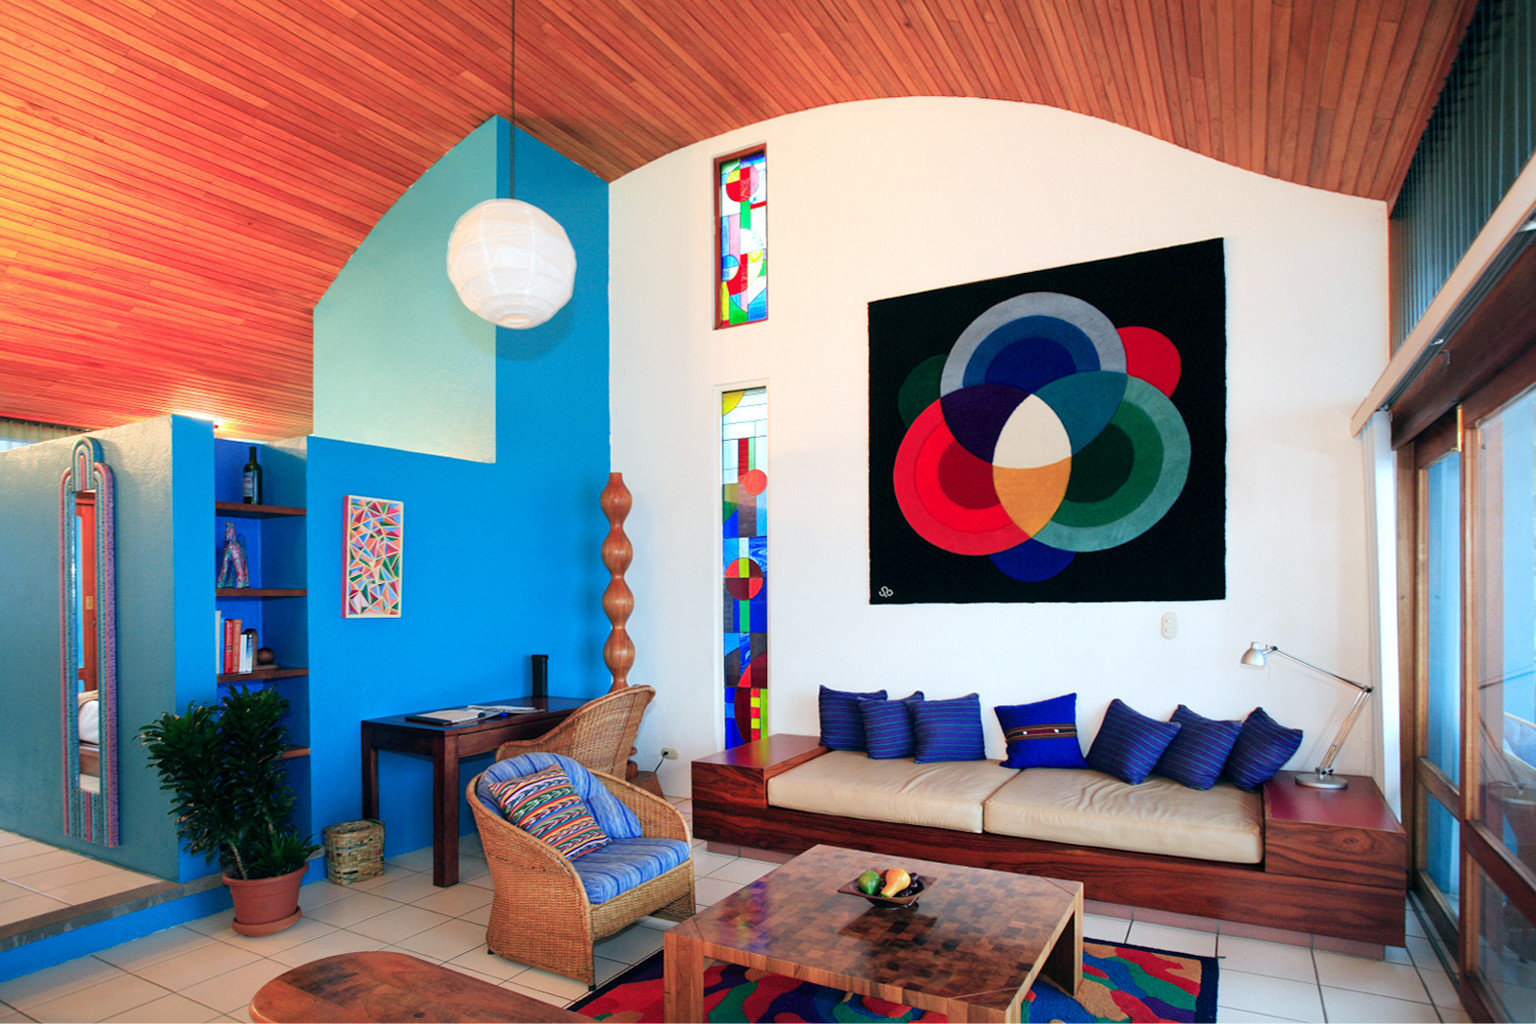 Bedroom Suite Wellness color blue living room house Play mural home Resort colorful painted